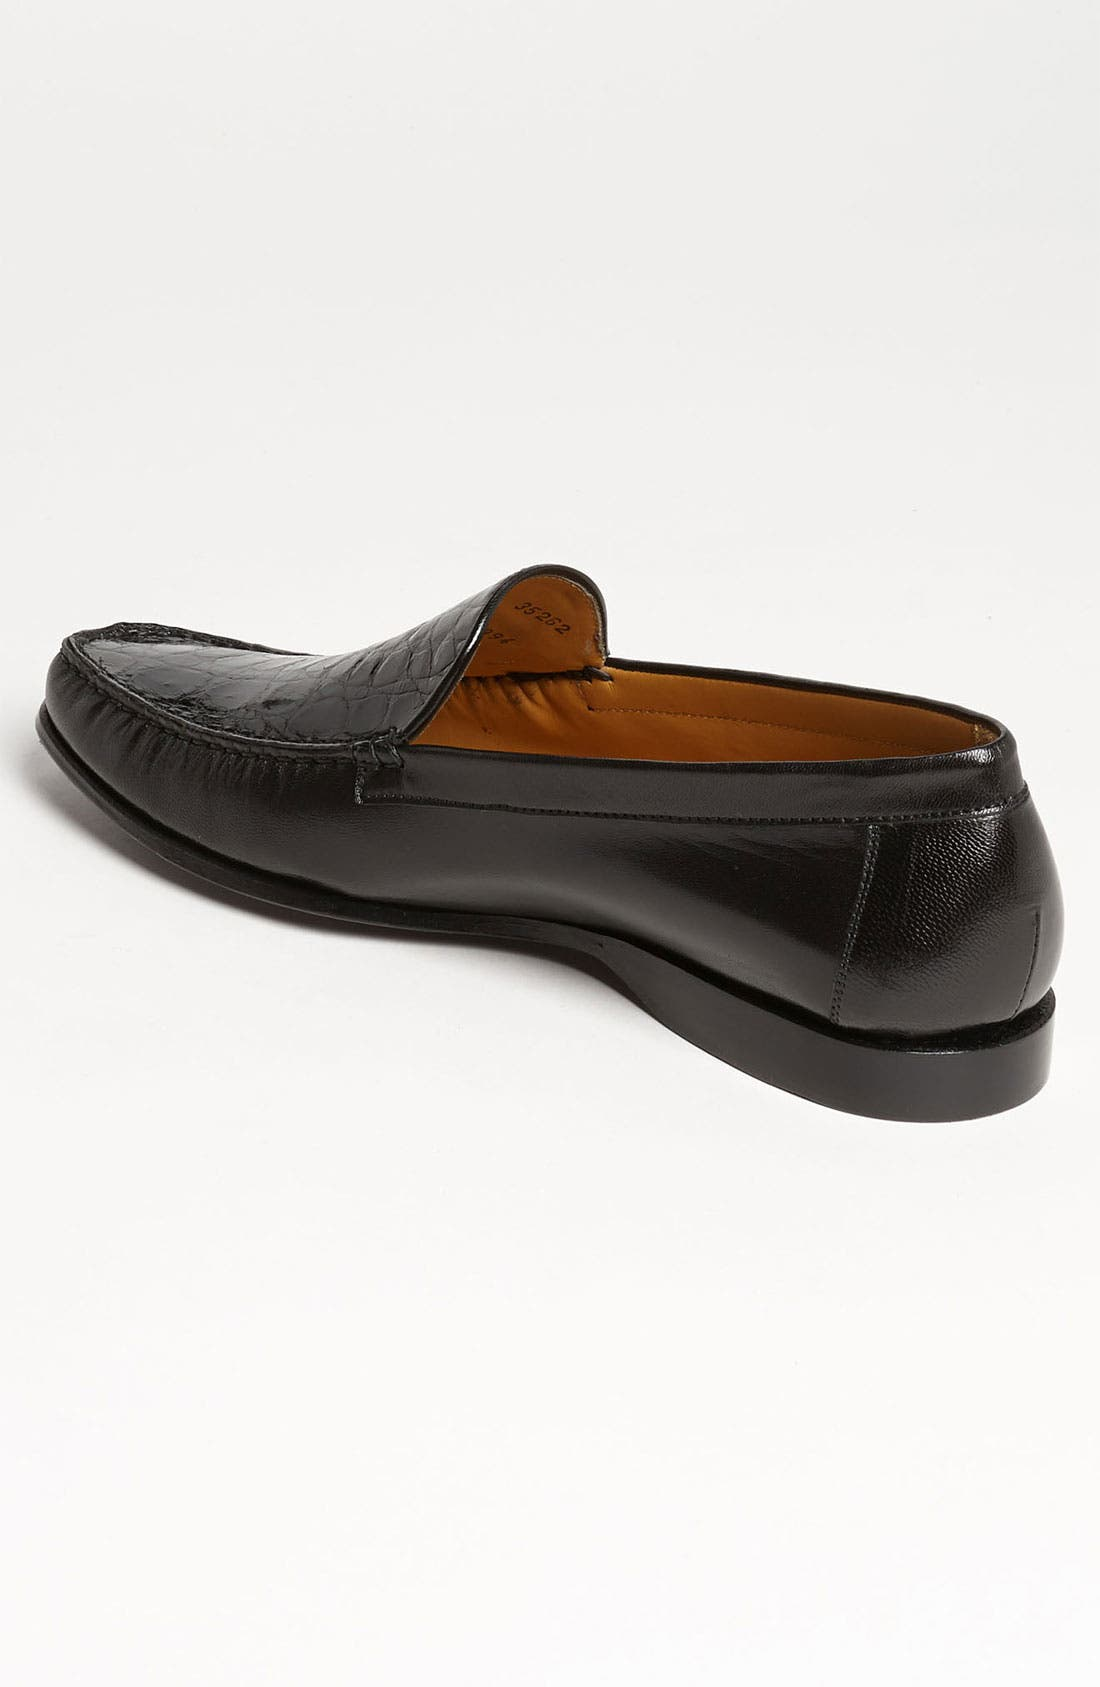 'Costanzo' Loafer,                             Alternate thumbnail 3, color,                             001